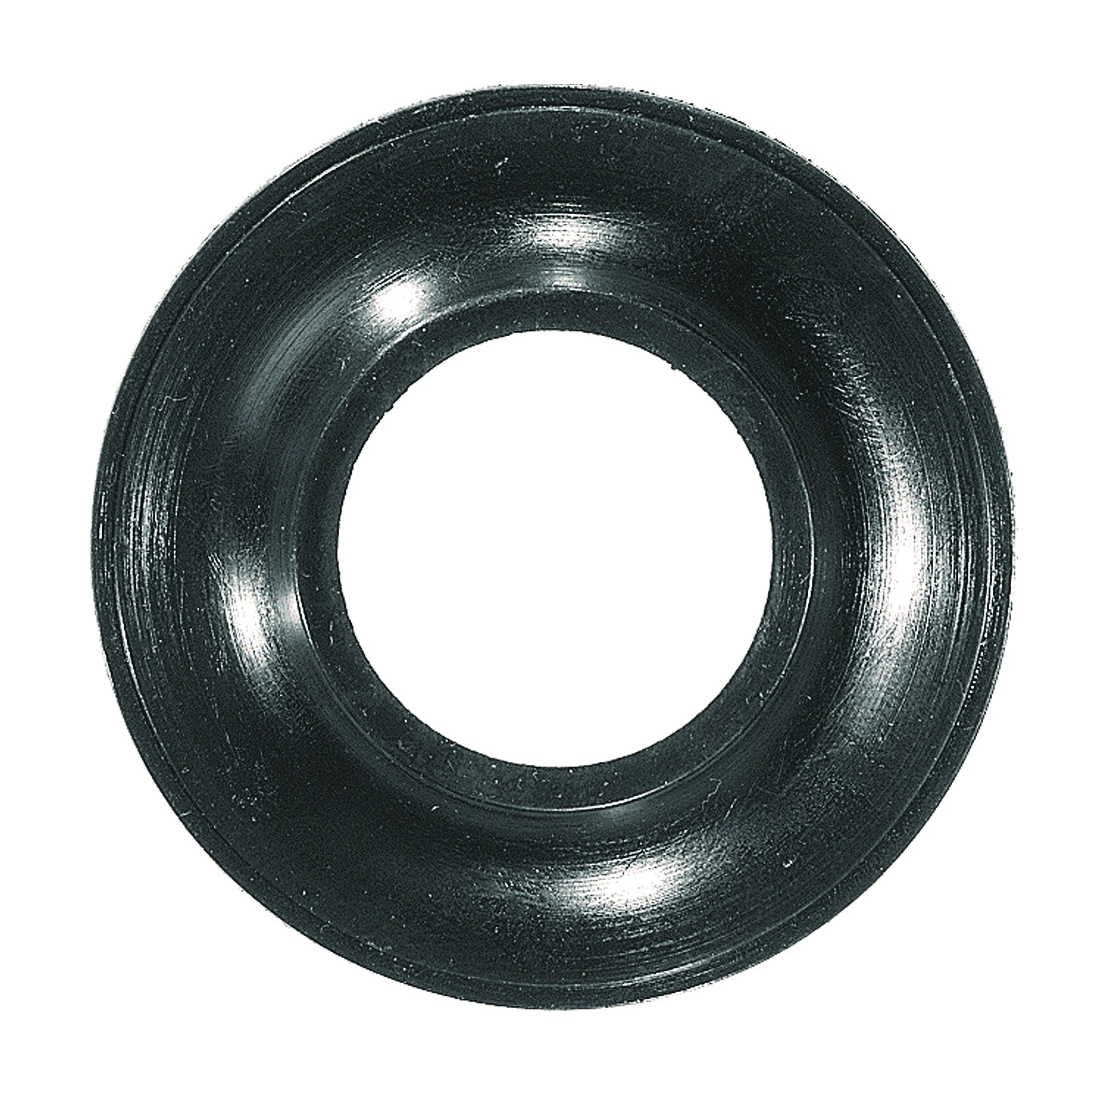 Picture of Danco 37680B Tub Drain Cartridge Gasket, Rubber, For: Toe Touch Drain Assembly